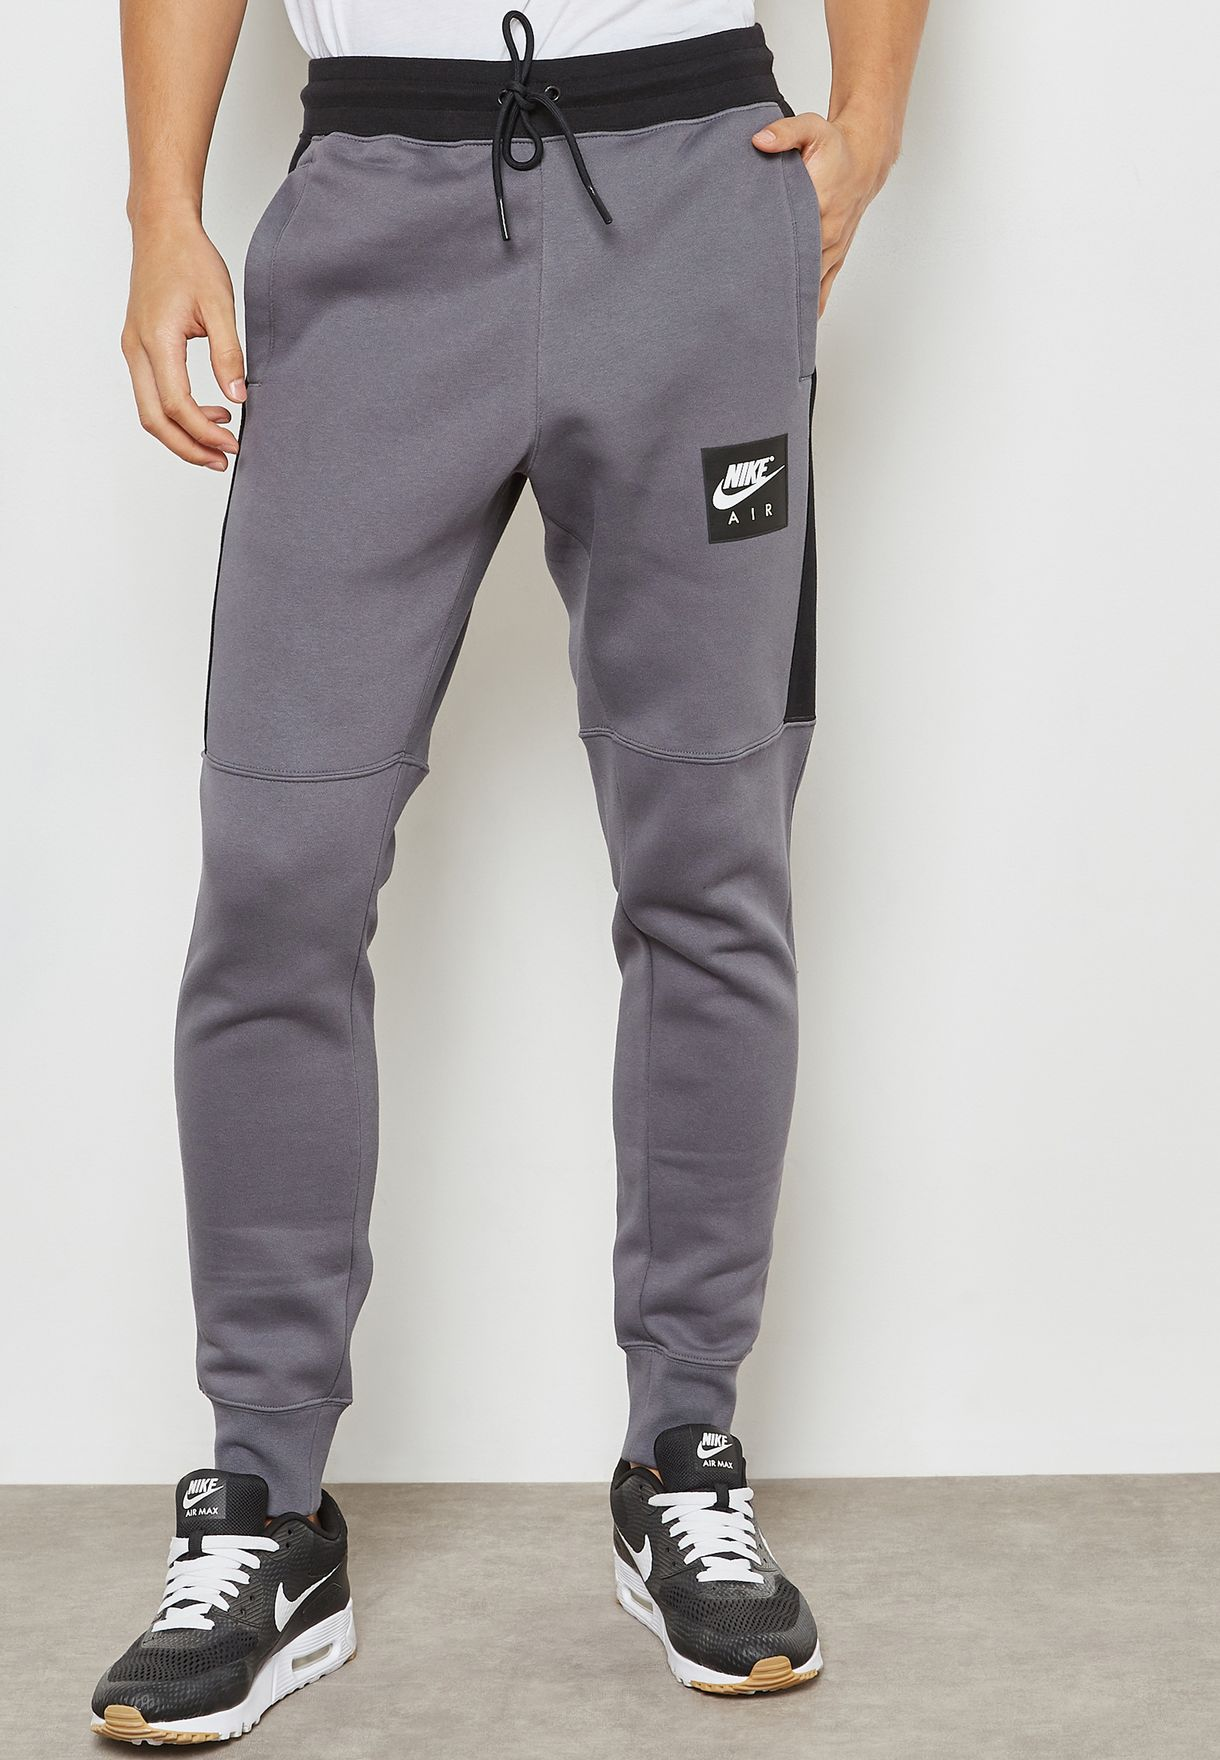 eddebaa45d7f Shop Nike grey Air Fleece Sweatpants 886048-021 for Men in UAE ...